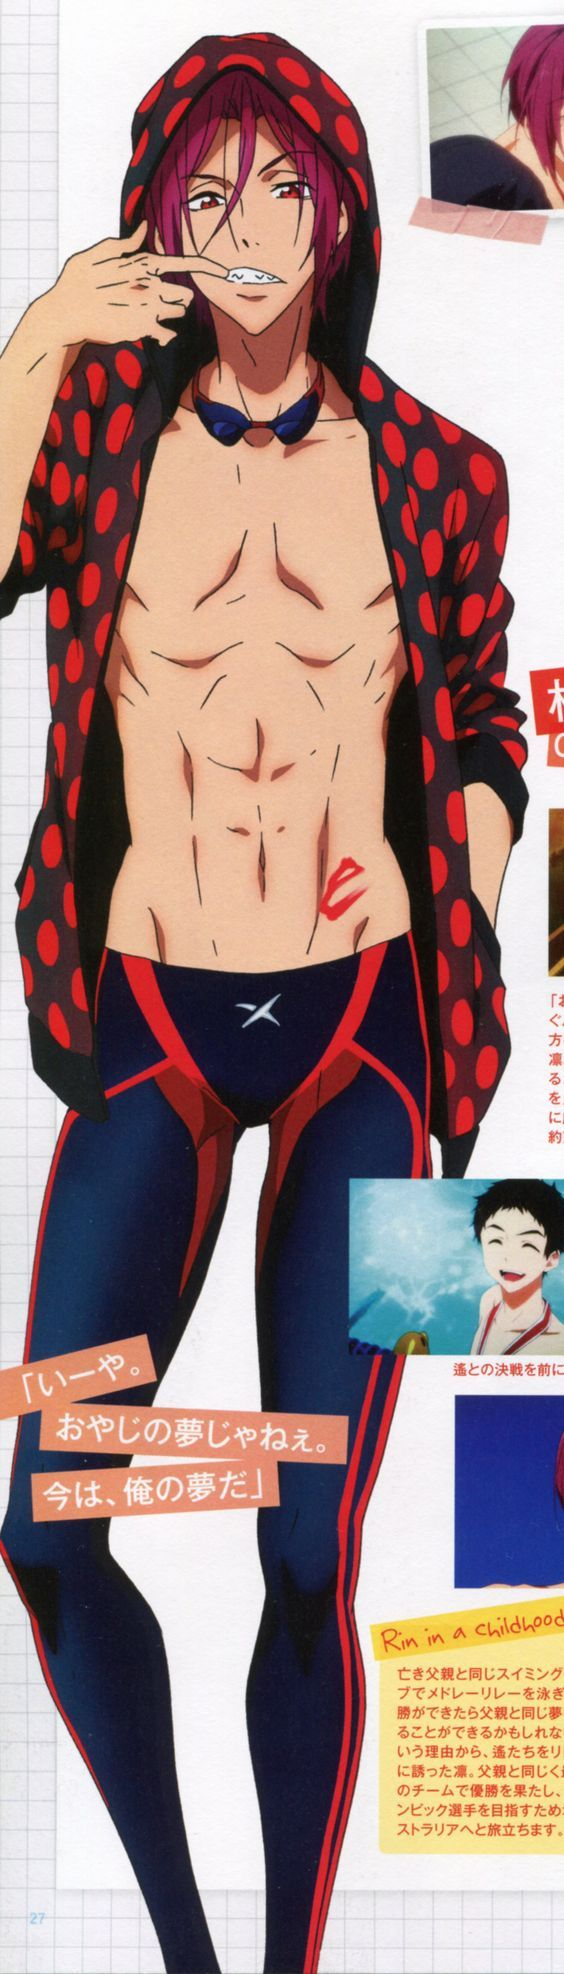 Free! ~~ Rin ::  If they line up properly, they spell the name of the show!